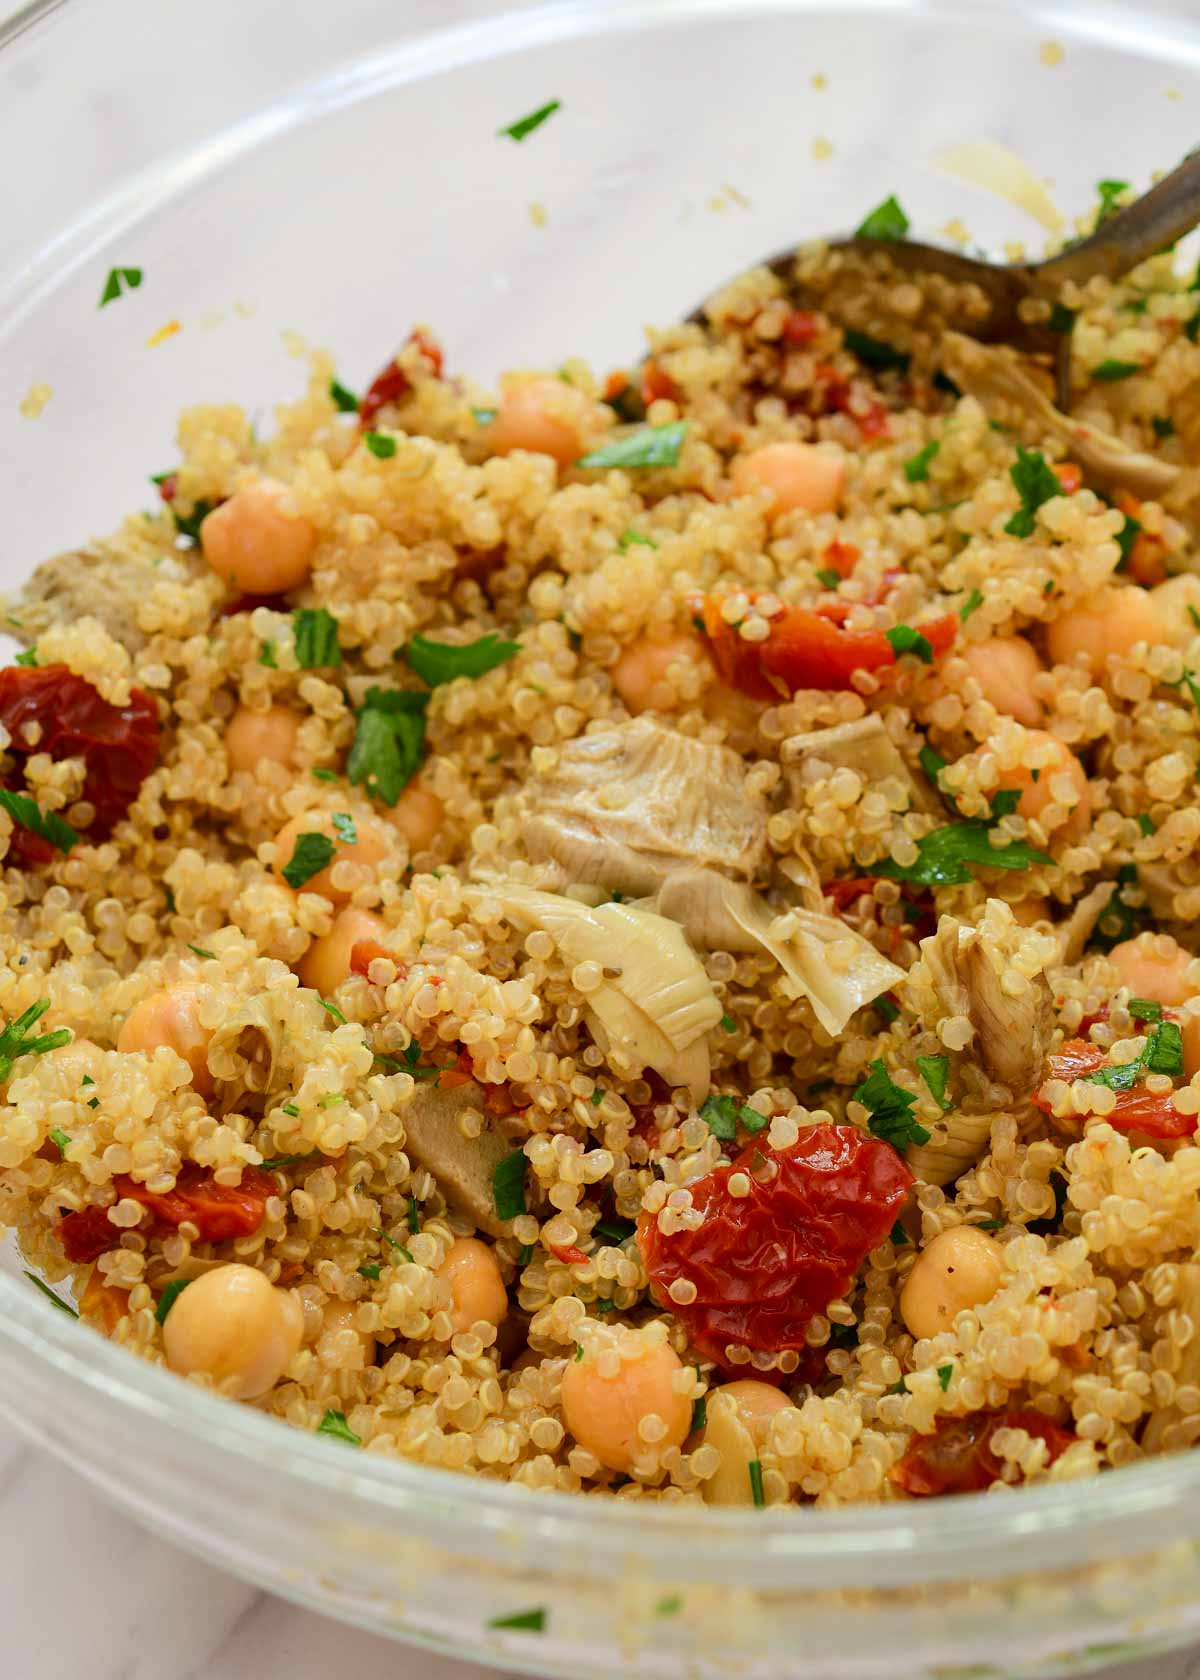 A glass bowl with the Mediterranean quinoa filling.